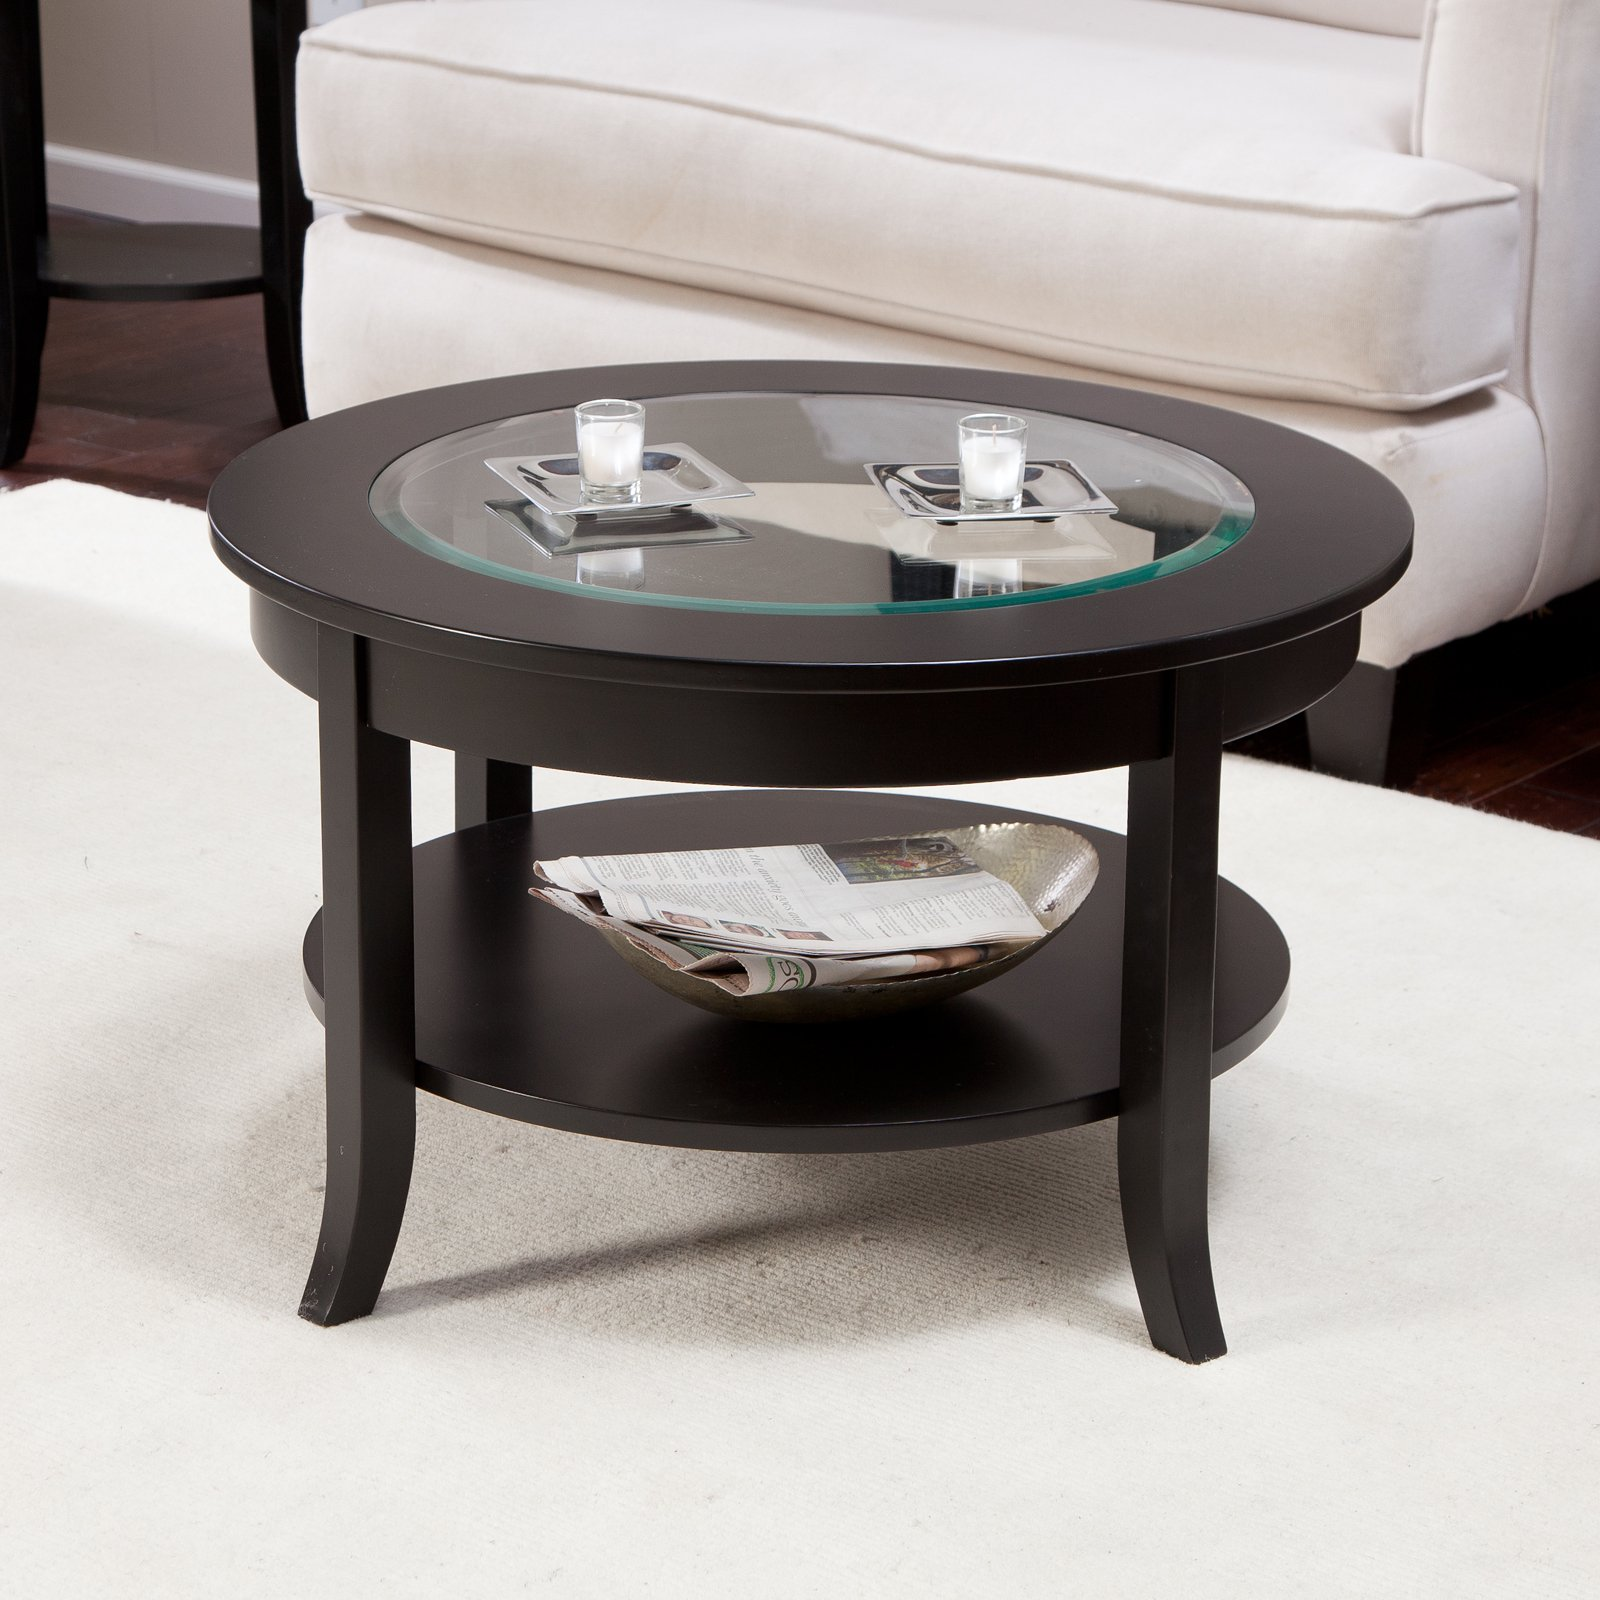 Round-Coffee-Tables-on-Hayneedle-with-glass-on-top-and-4-legs-30-Inch-Round-Coffee-Table (Image 8 of 9)